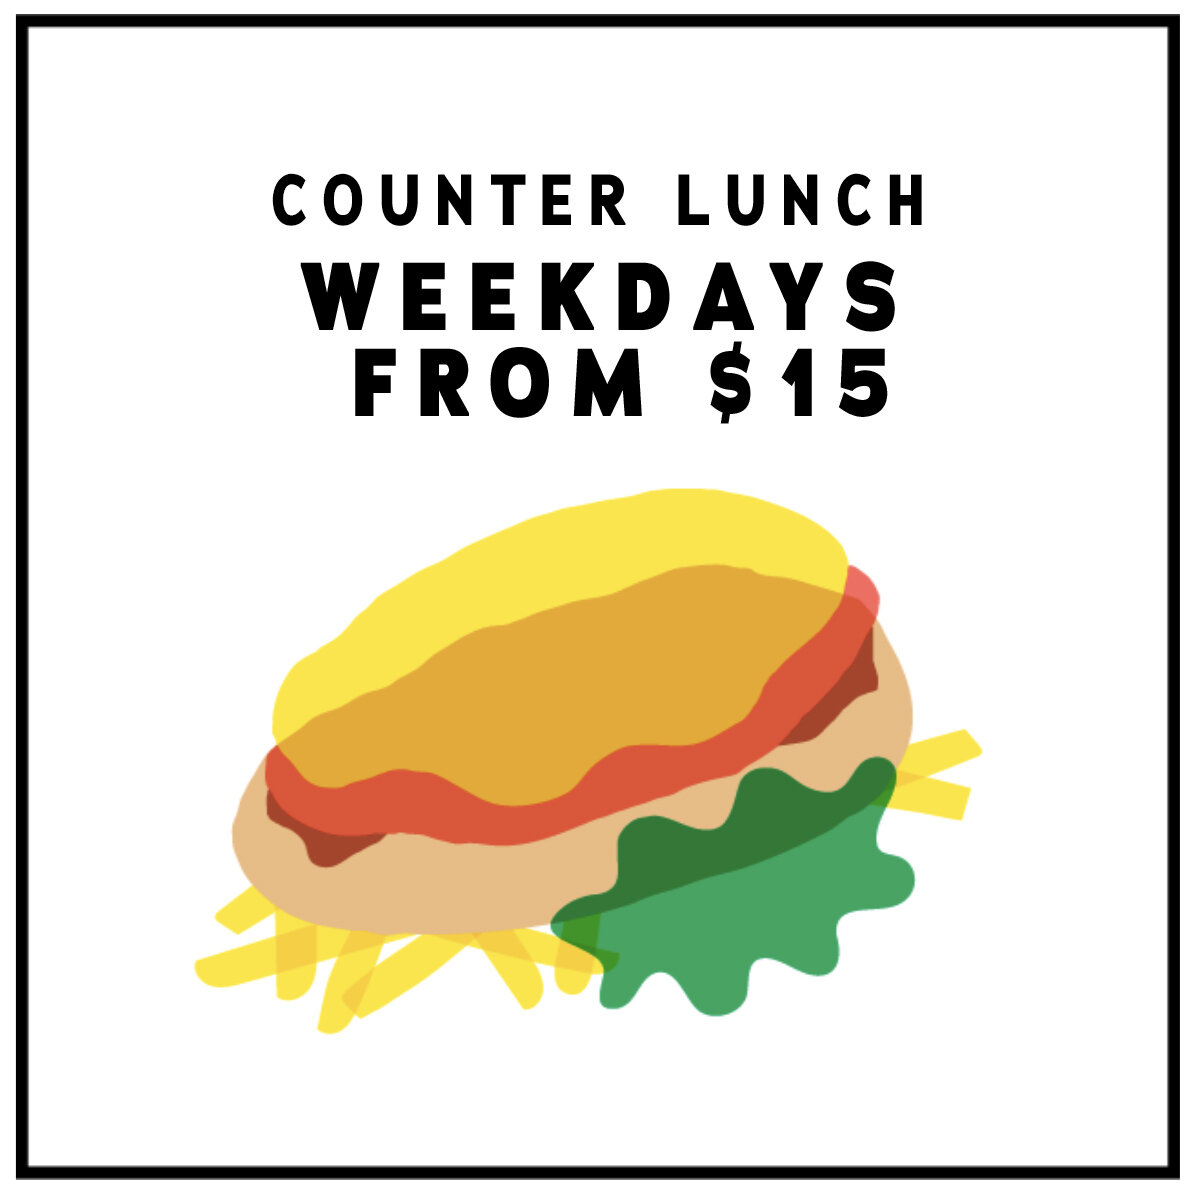 Counter Lunchfrom $15 - WEEKDAYS12 UNTIL 3